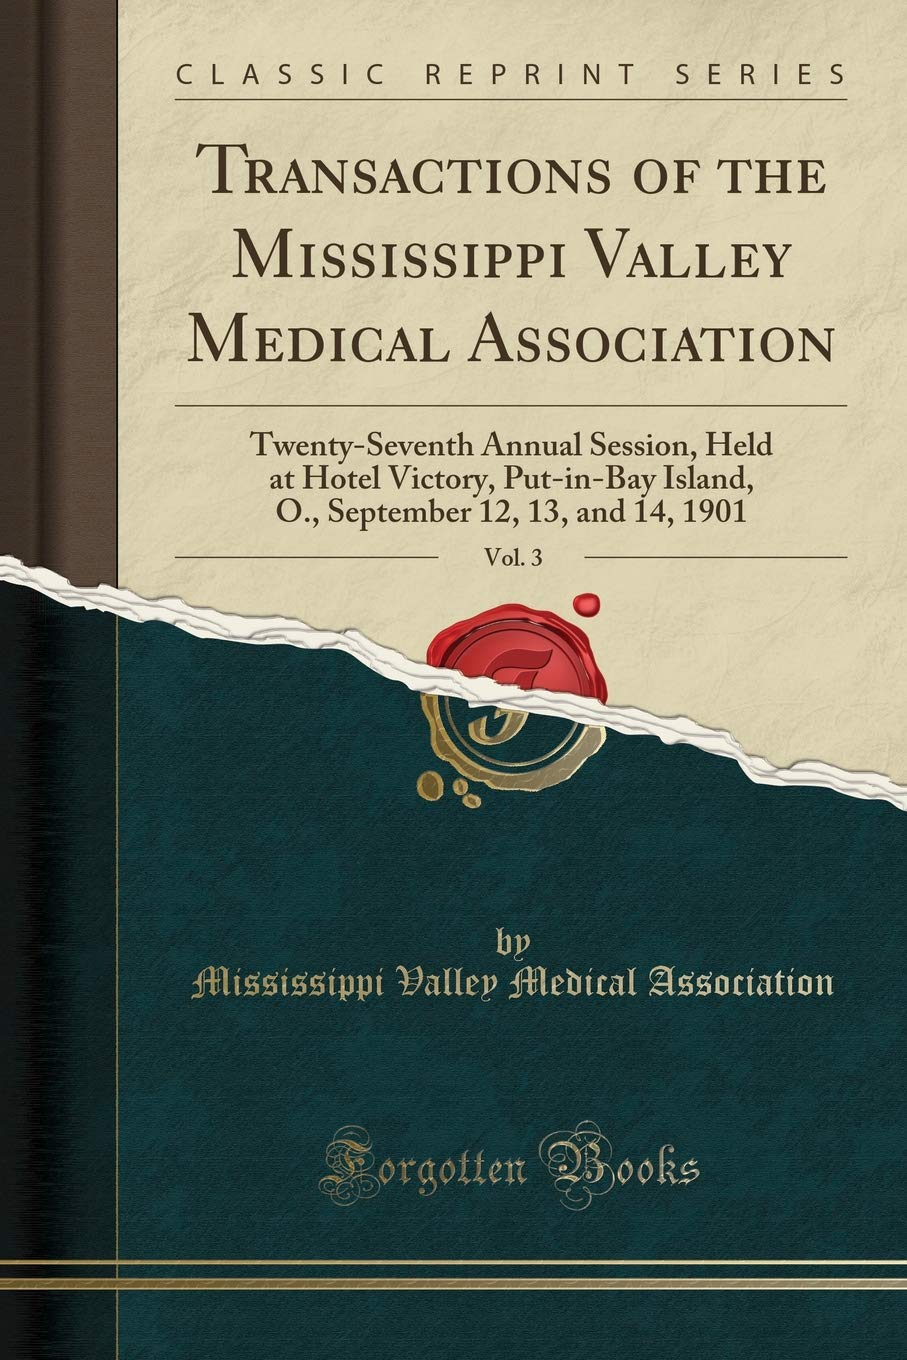 Read Online Transactions of the Mississippi Valley Medical Association, Vol. 3: Twenty-Seventh Annual Session, Held at Hotel Victory, Put-in-Bay Island, O., September 12, 13, and 14, 1901 (Classic Reprint) PDF